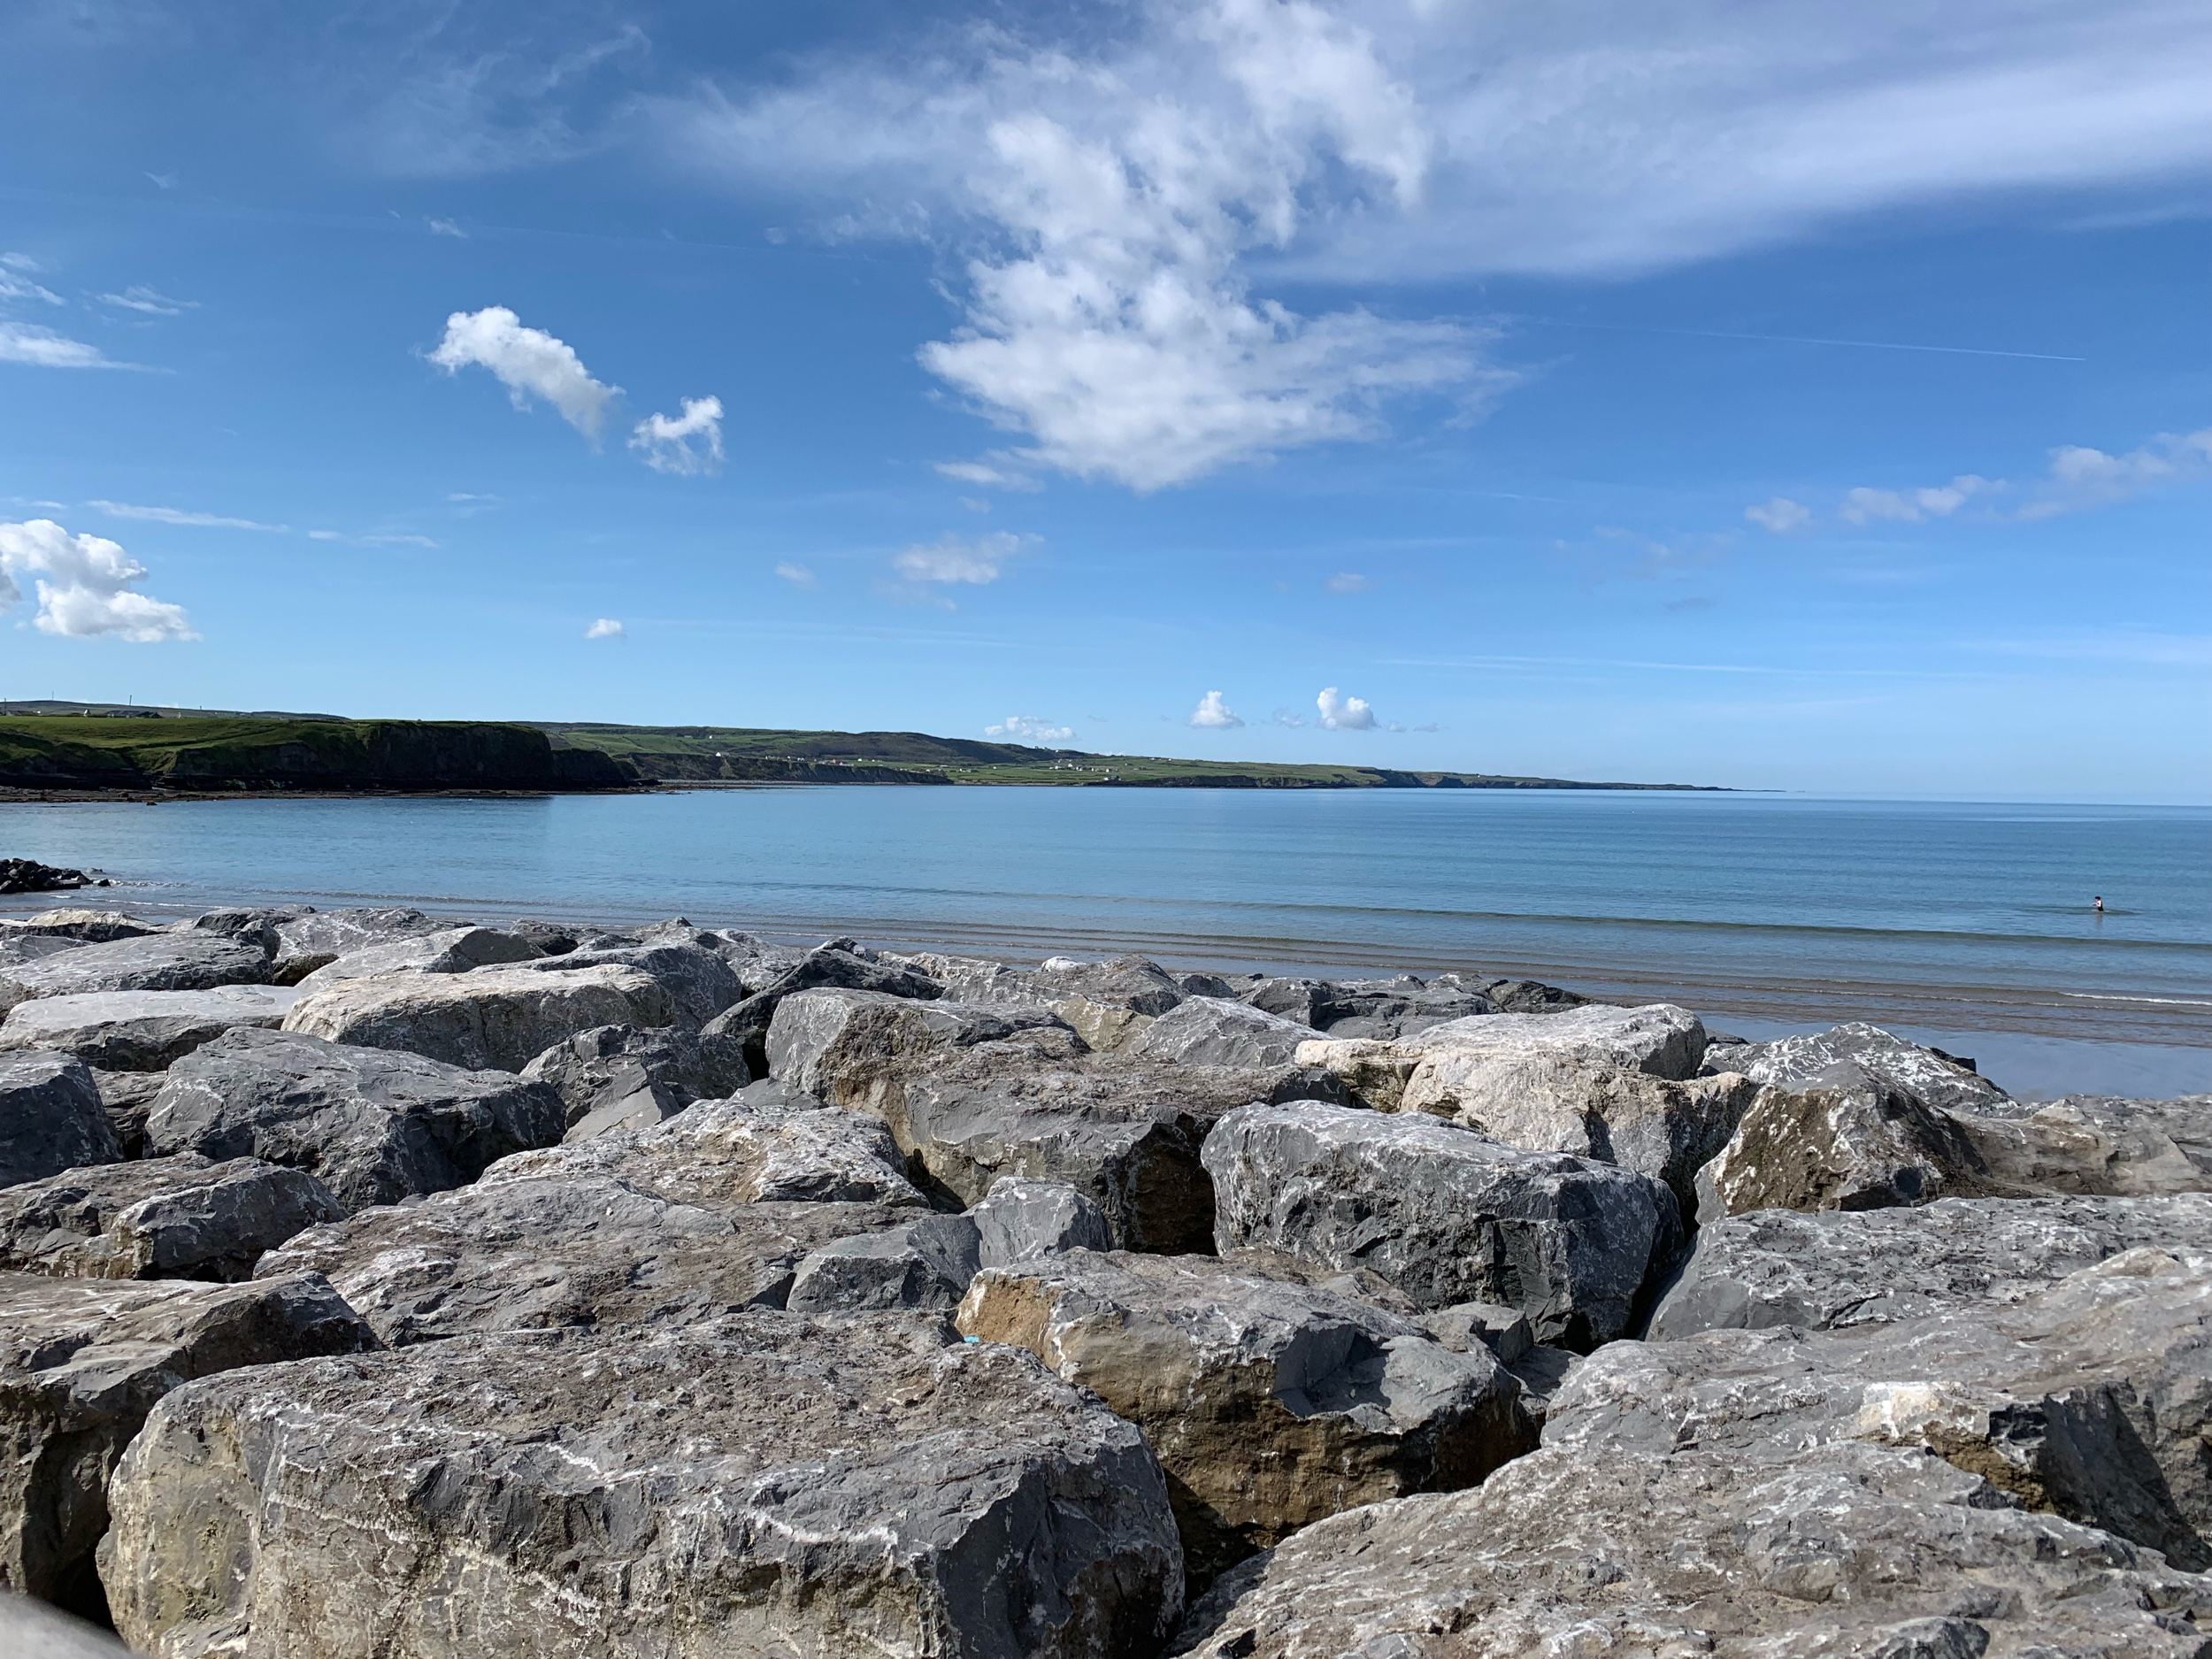 May 23, 2019 - Good morning from Lahinch Beach, Lahinch, County Clare, Ireland. No edits.